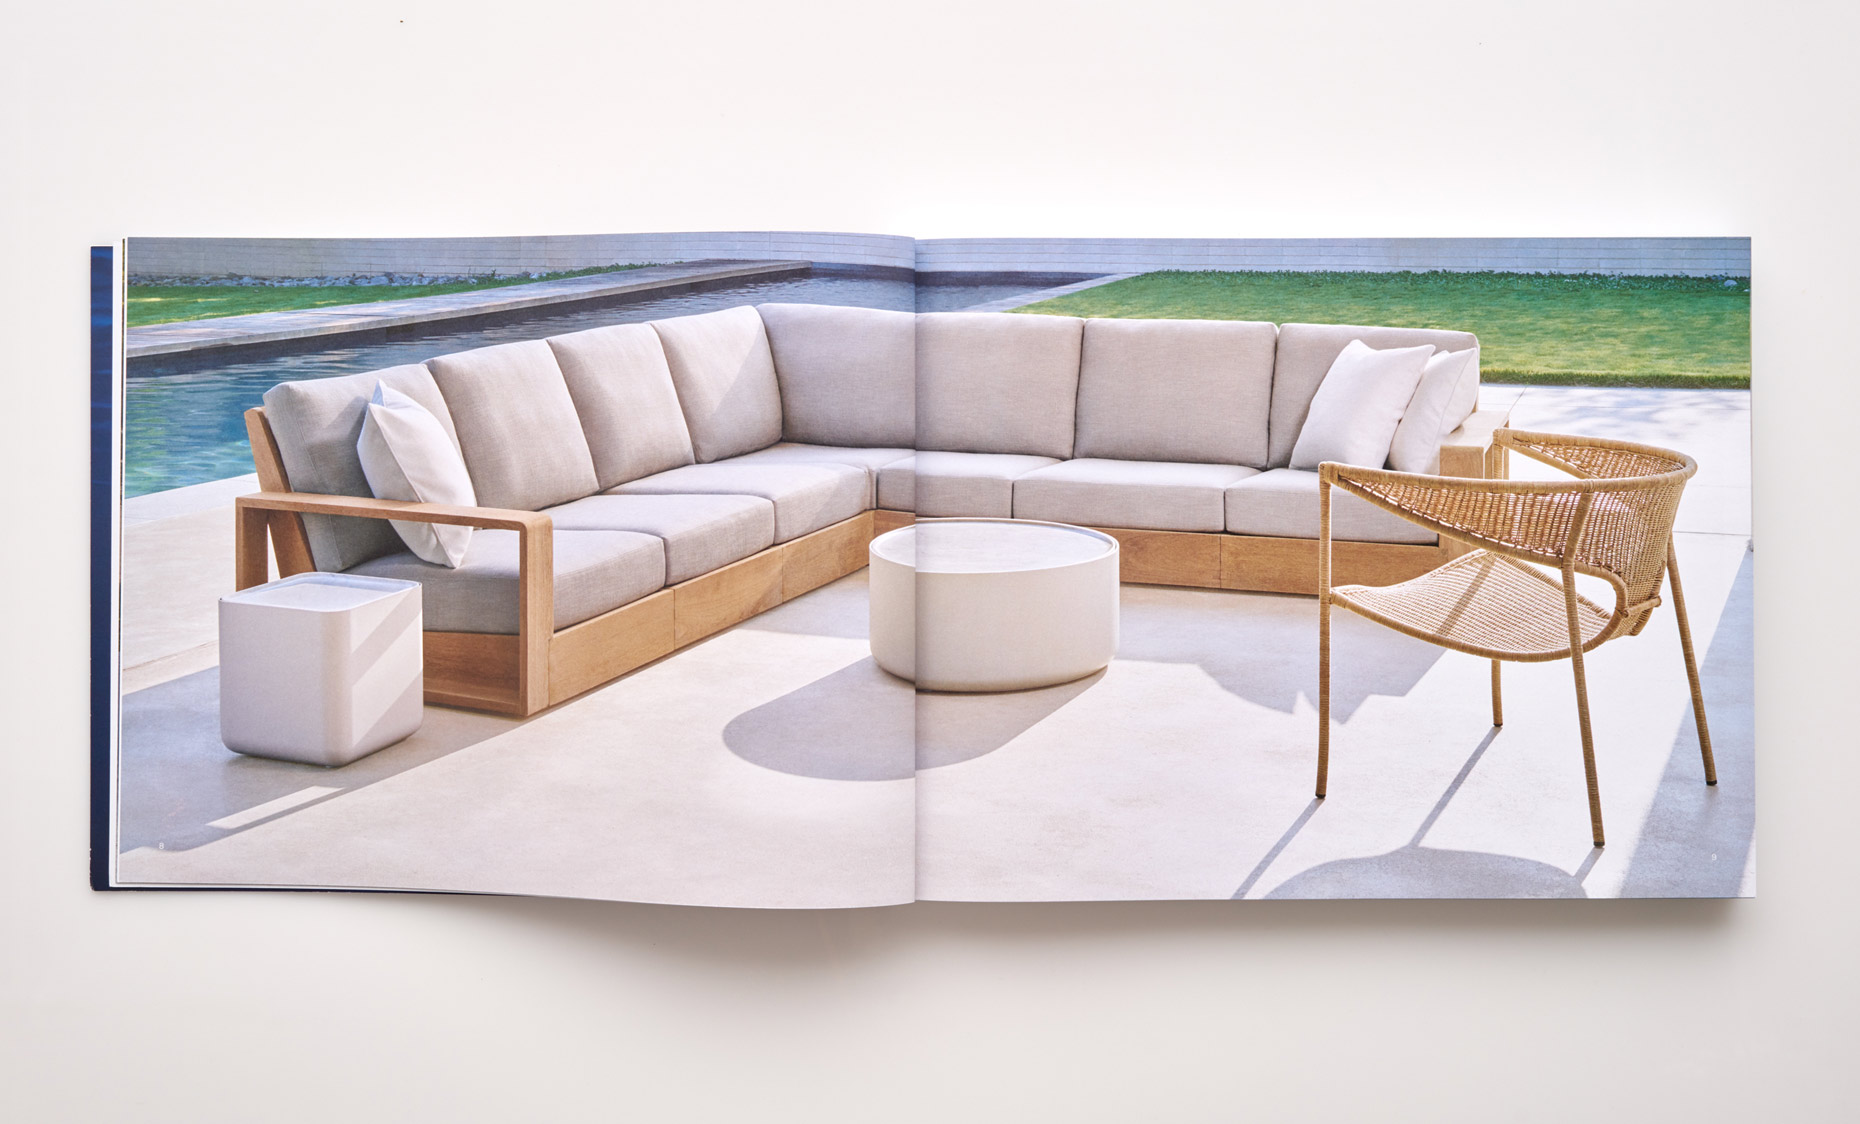 Stephen Karlisch Sutherland Furniture Franck Poolside Sectional